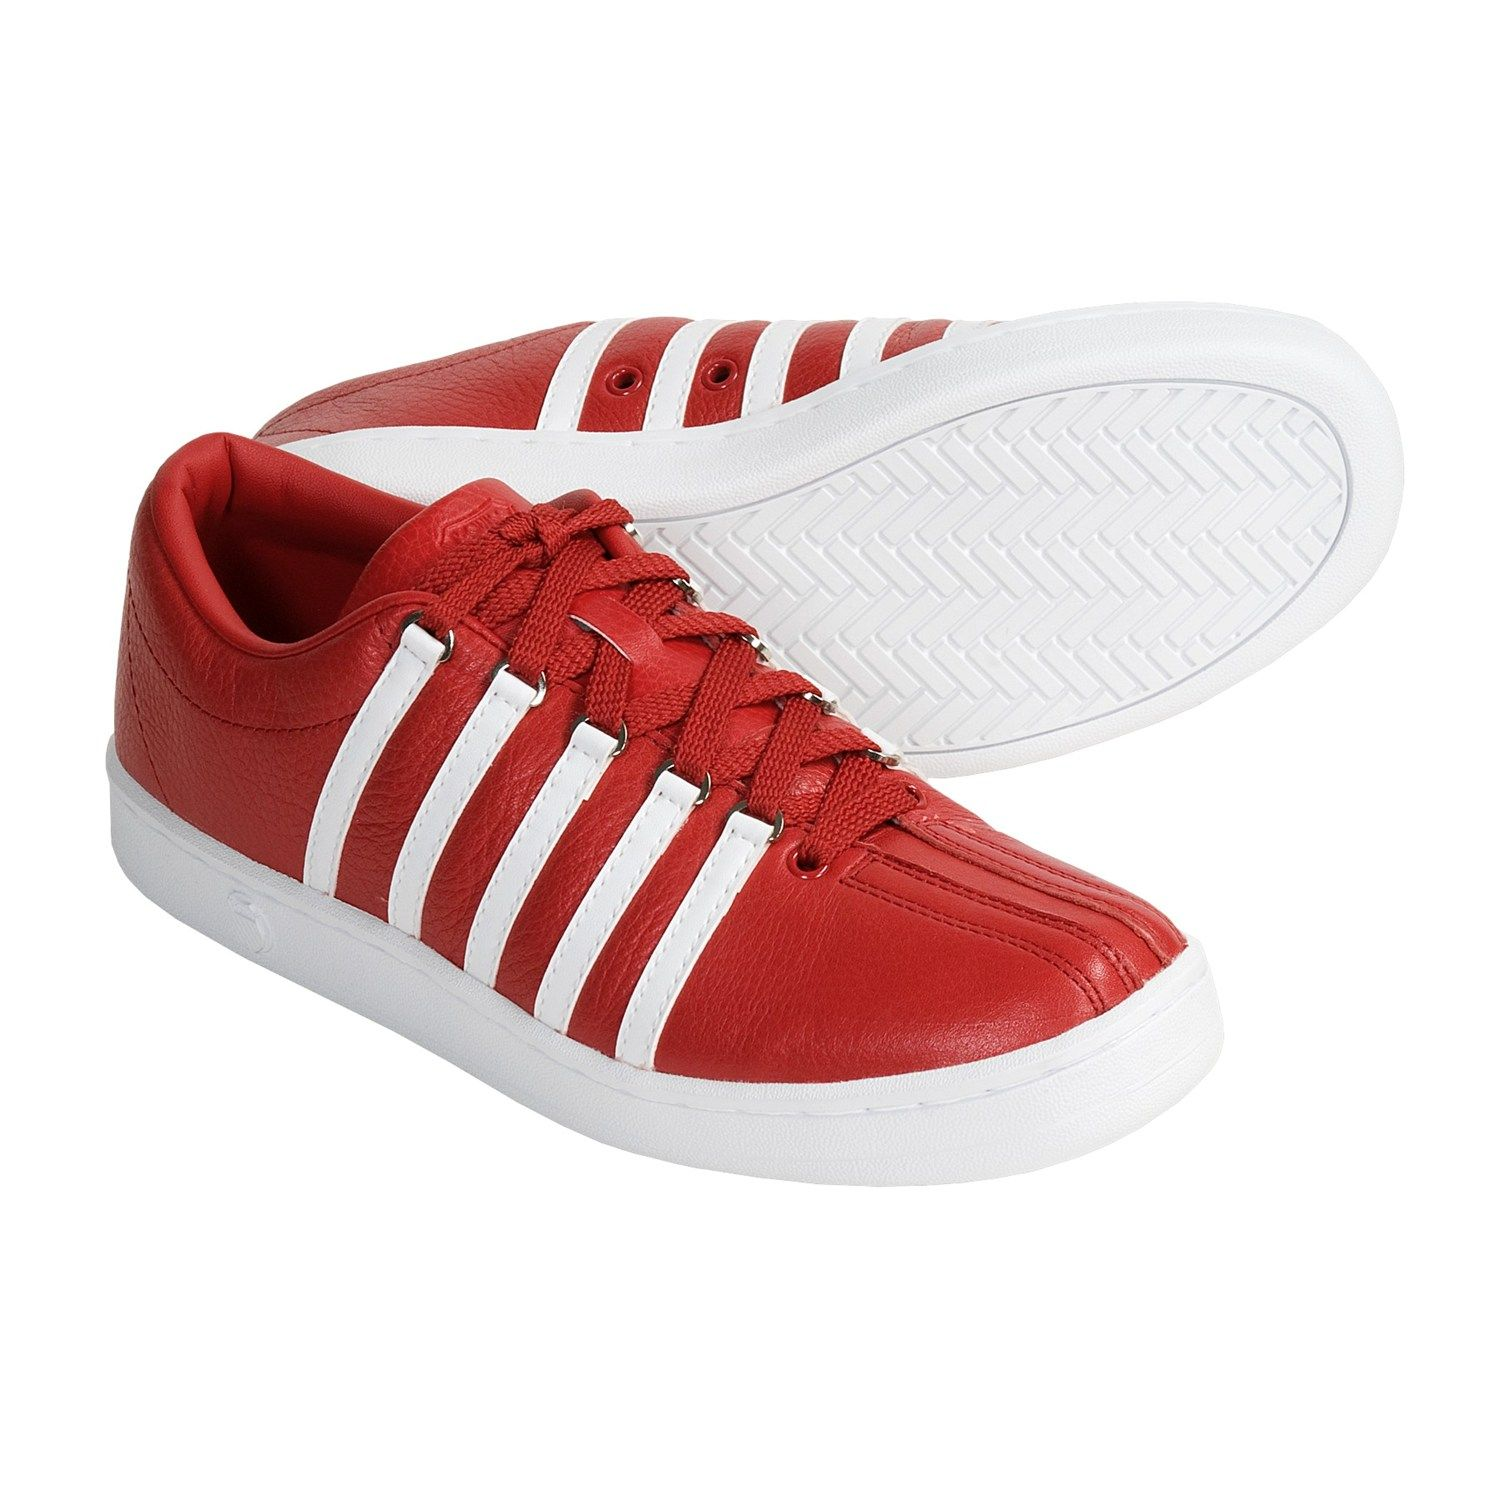 fc2c8ba94a04 K-Swiss The Classic Leather Shoes (For Men) in Red White Pebble